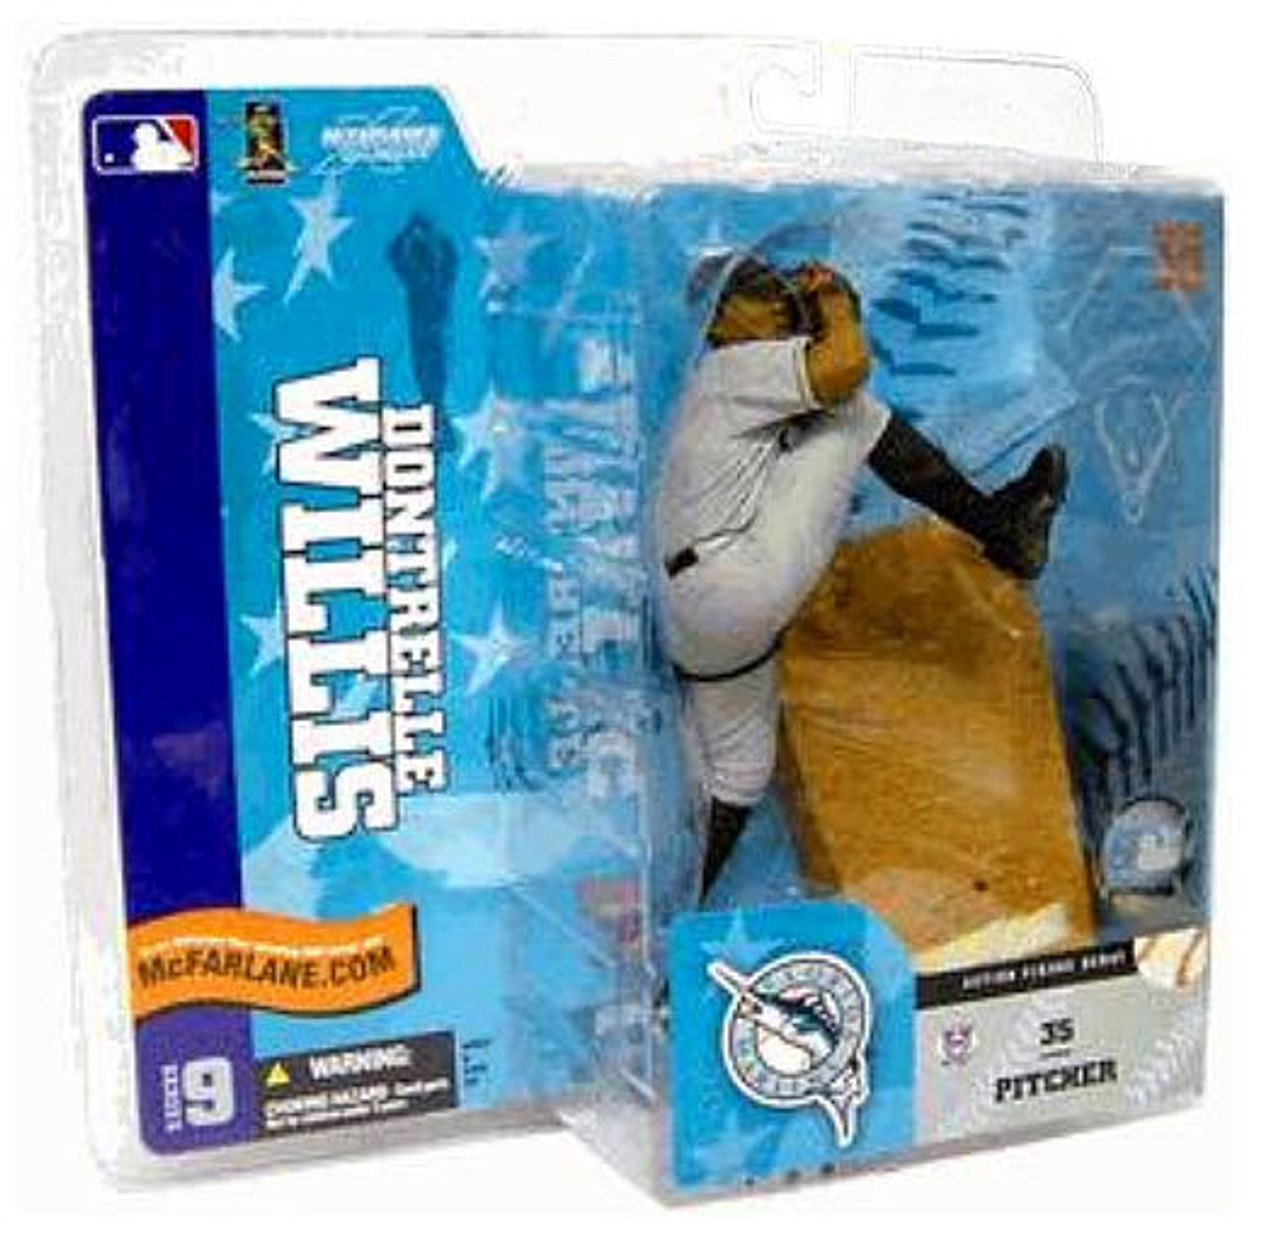 McFarlane Toys MLB Florida Marlins Sports Picks Series 9 Dontrelle Willis Action Figure [Gray Jersey Variant]